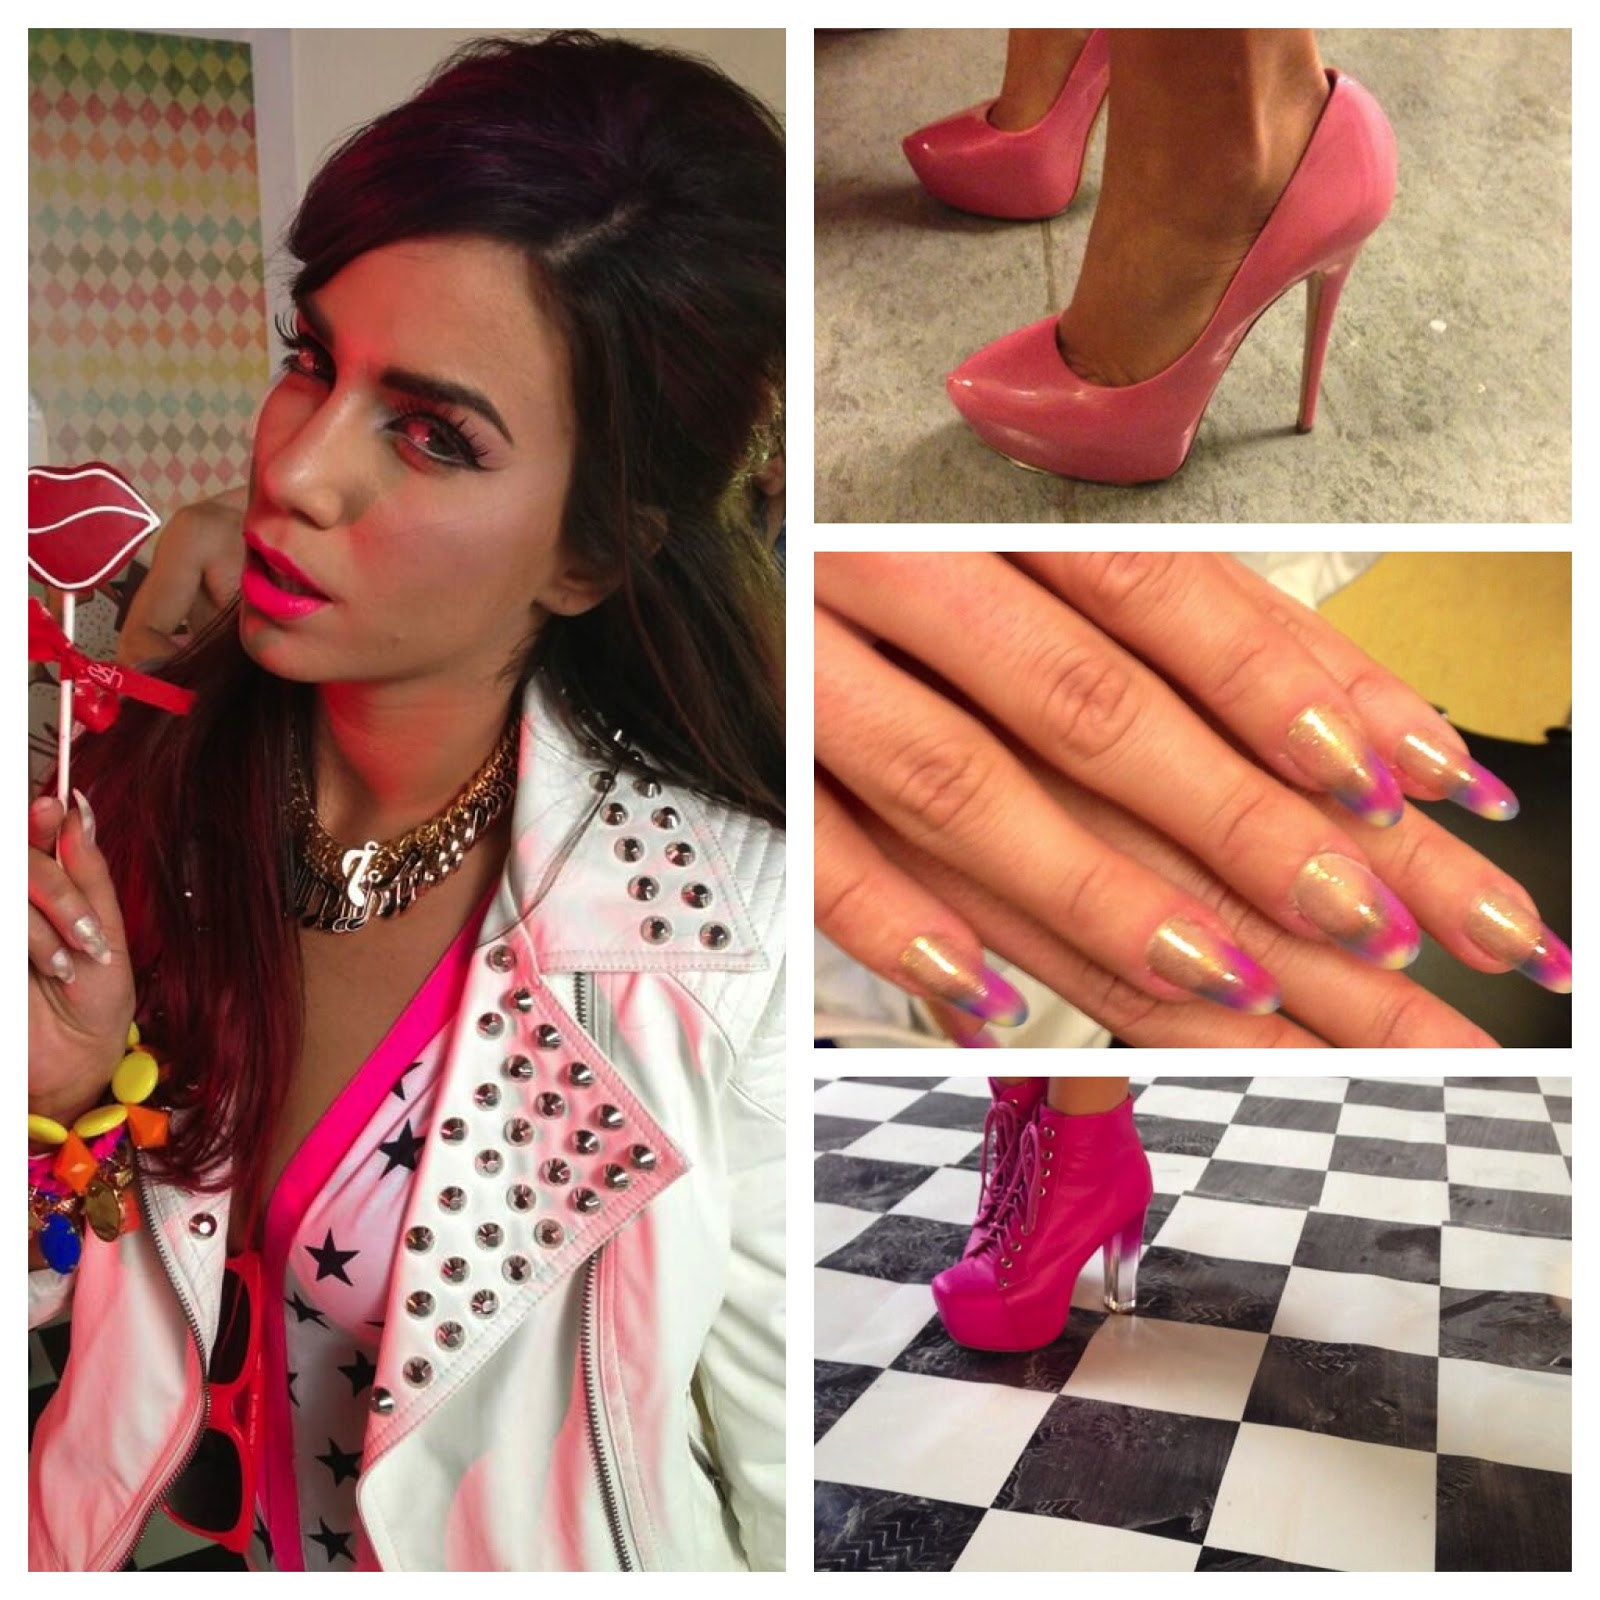 Katerina Stikoudis New Song  Cf 88 Ce B7 Ce Bb Ce B1  Cf 84 Ce B1 Ce Ba Ce Bf Cf 85 Ce Bd Ce B9 Ce B1 High Heels Video Clip Is Here